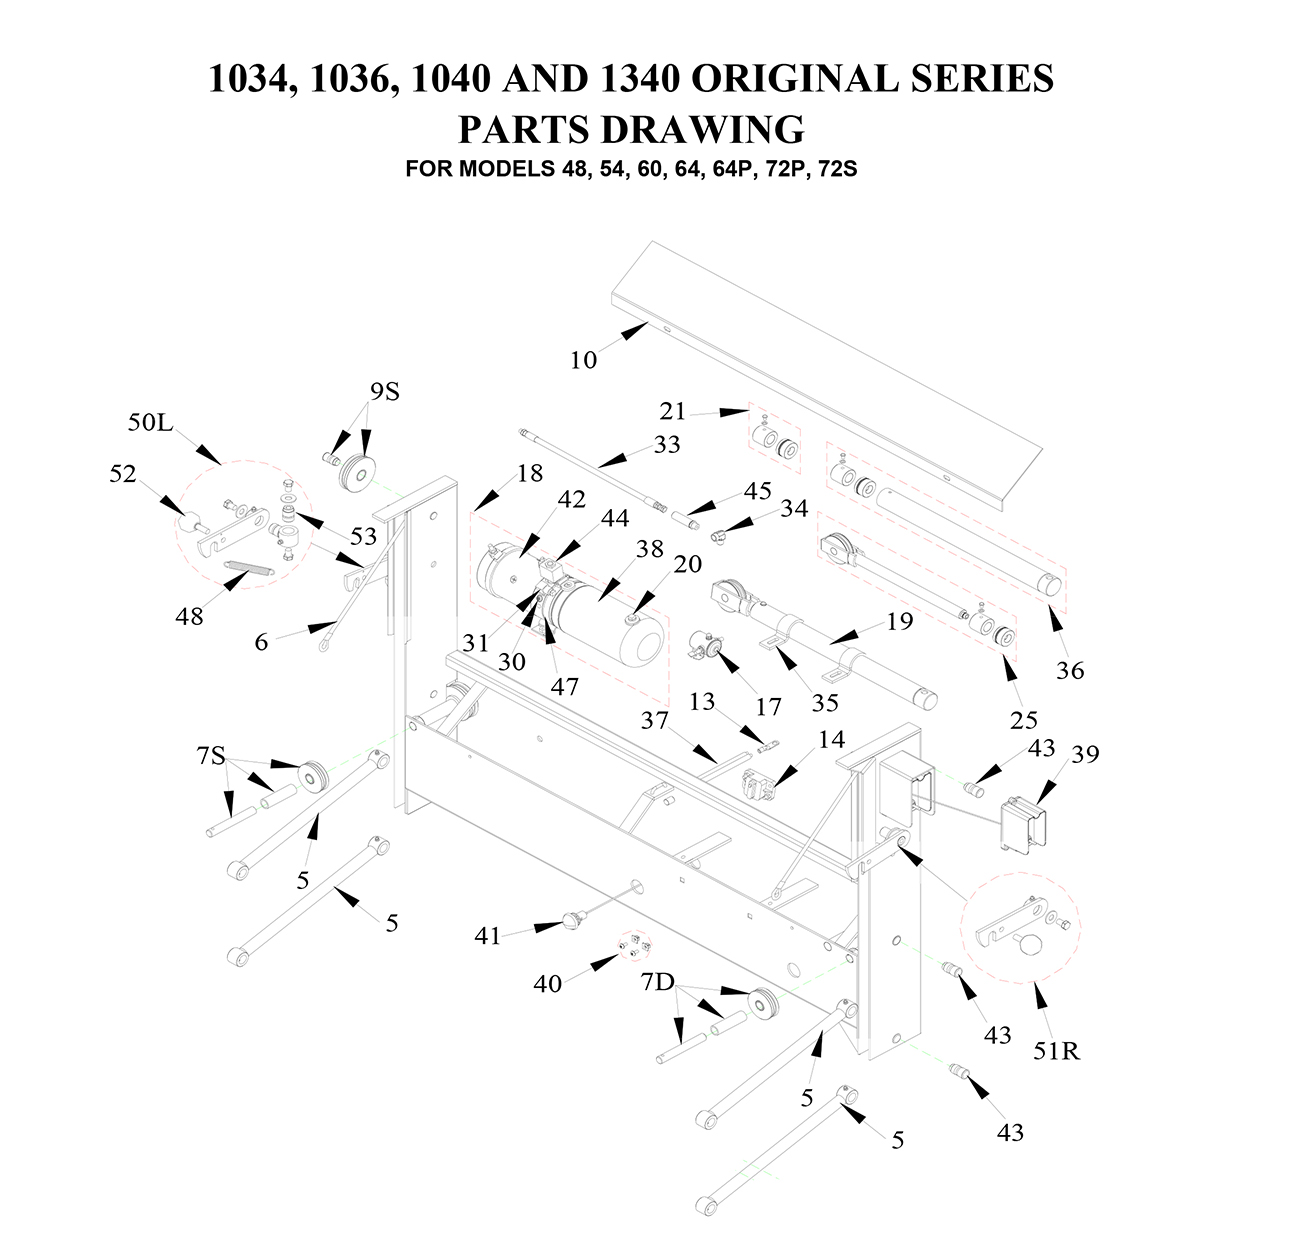 Liftgate Diagrams Tommy Gate Parts Shop Ite Homesteader Trailer Wiring Diagram Original Series 1 Of 2 Pickup Service Body